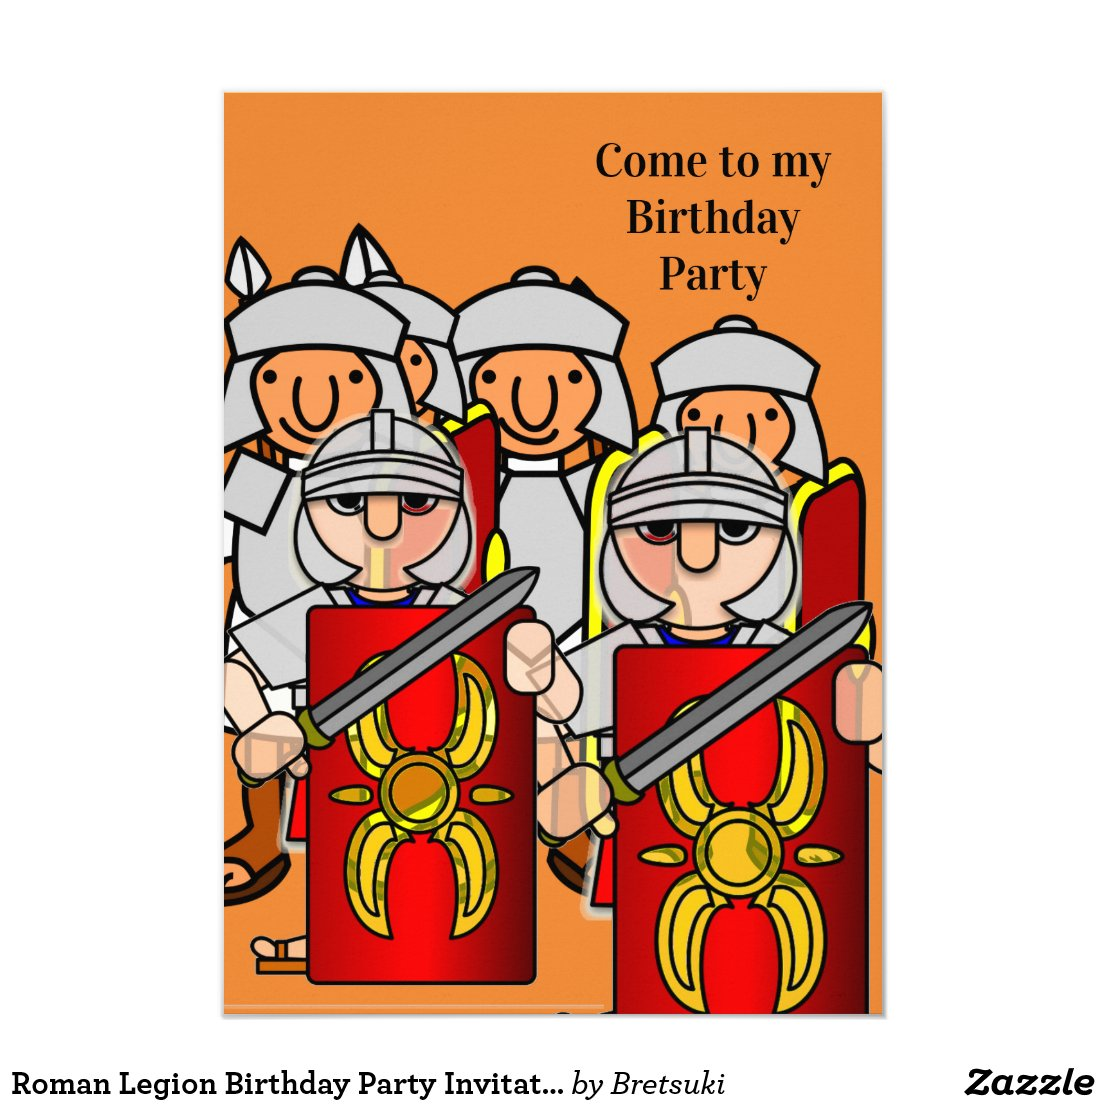 Roman Legion Birthday Party Invitation